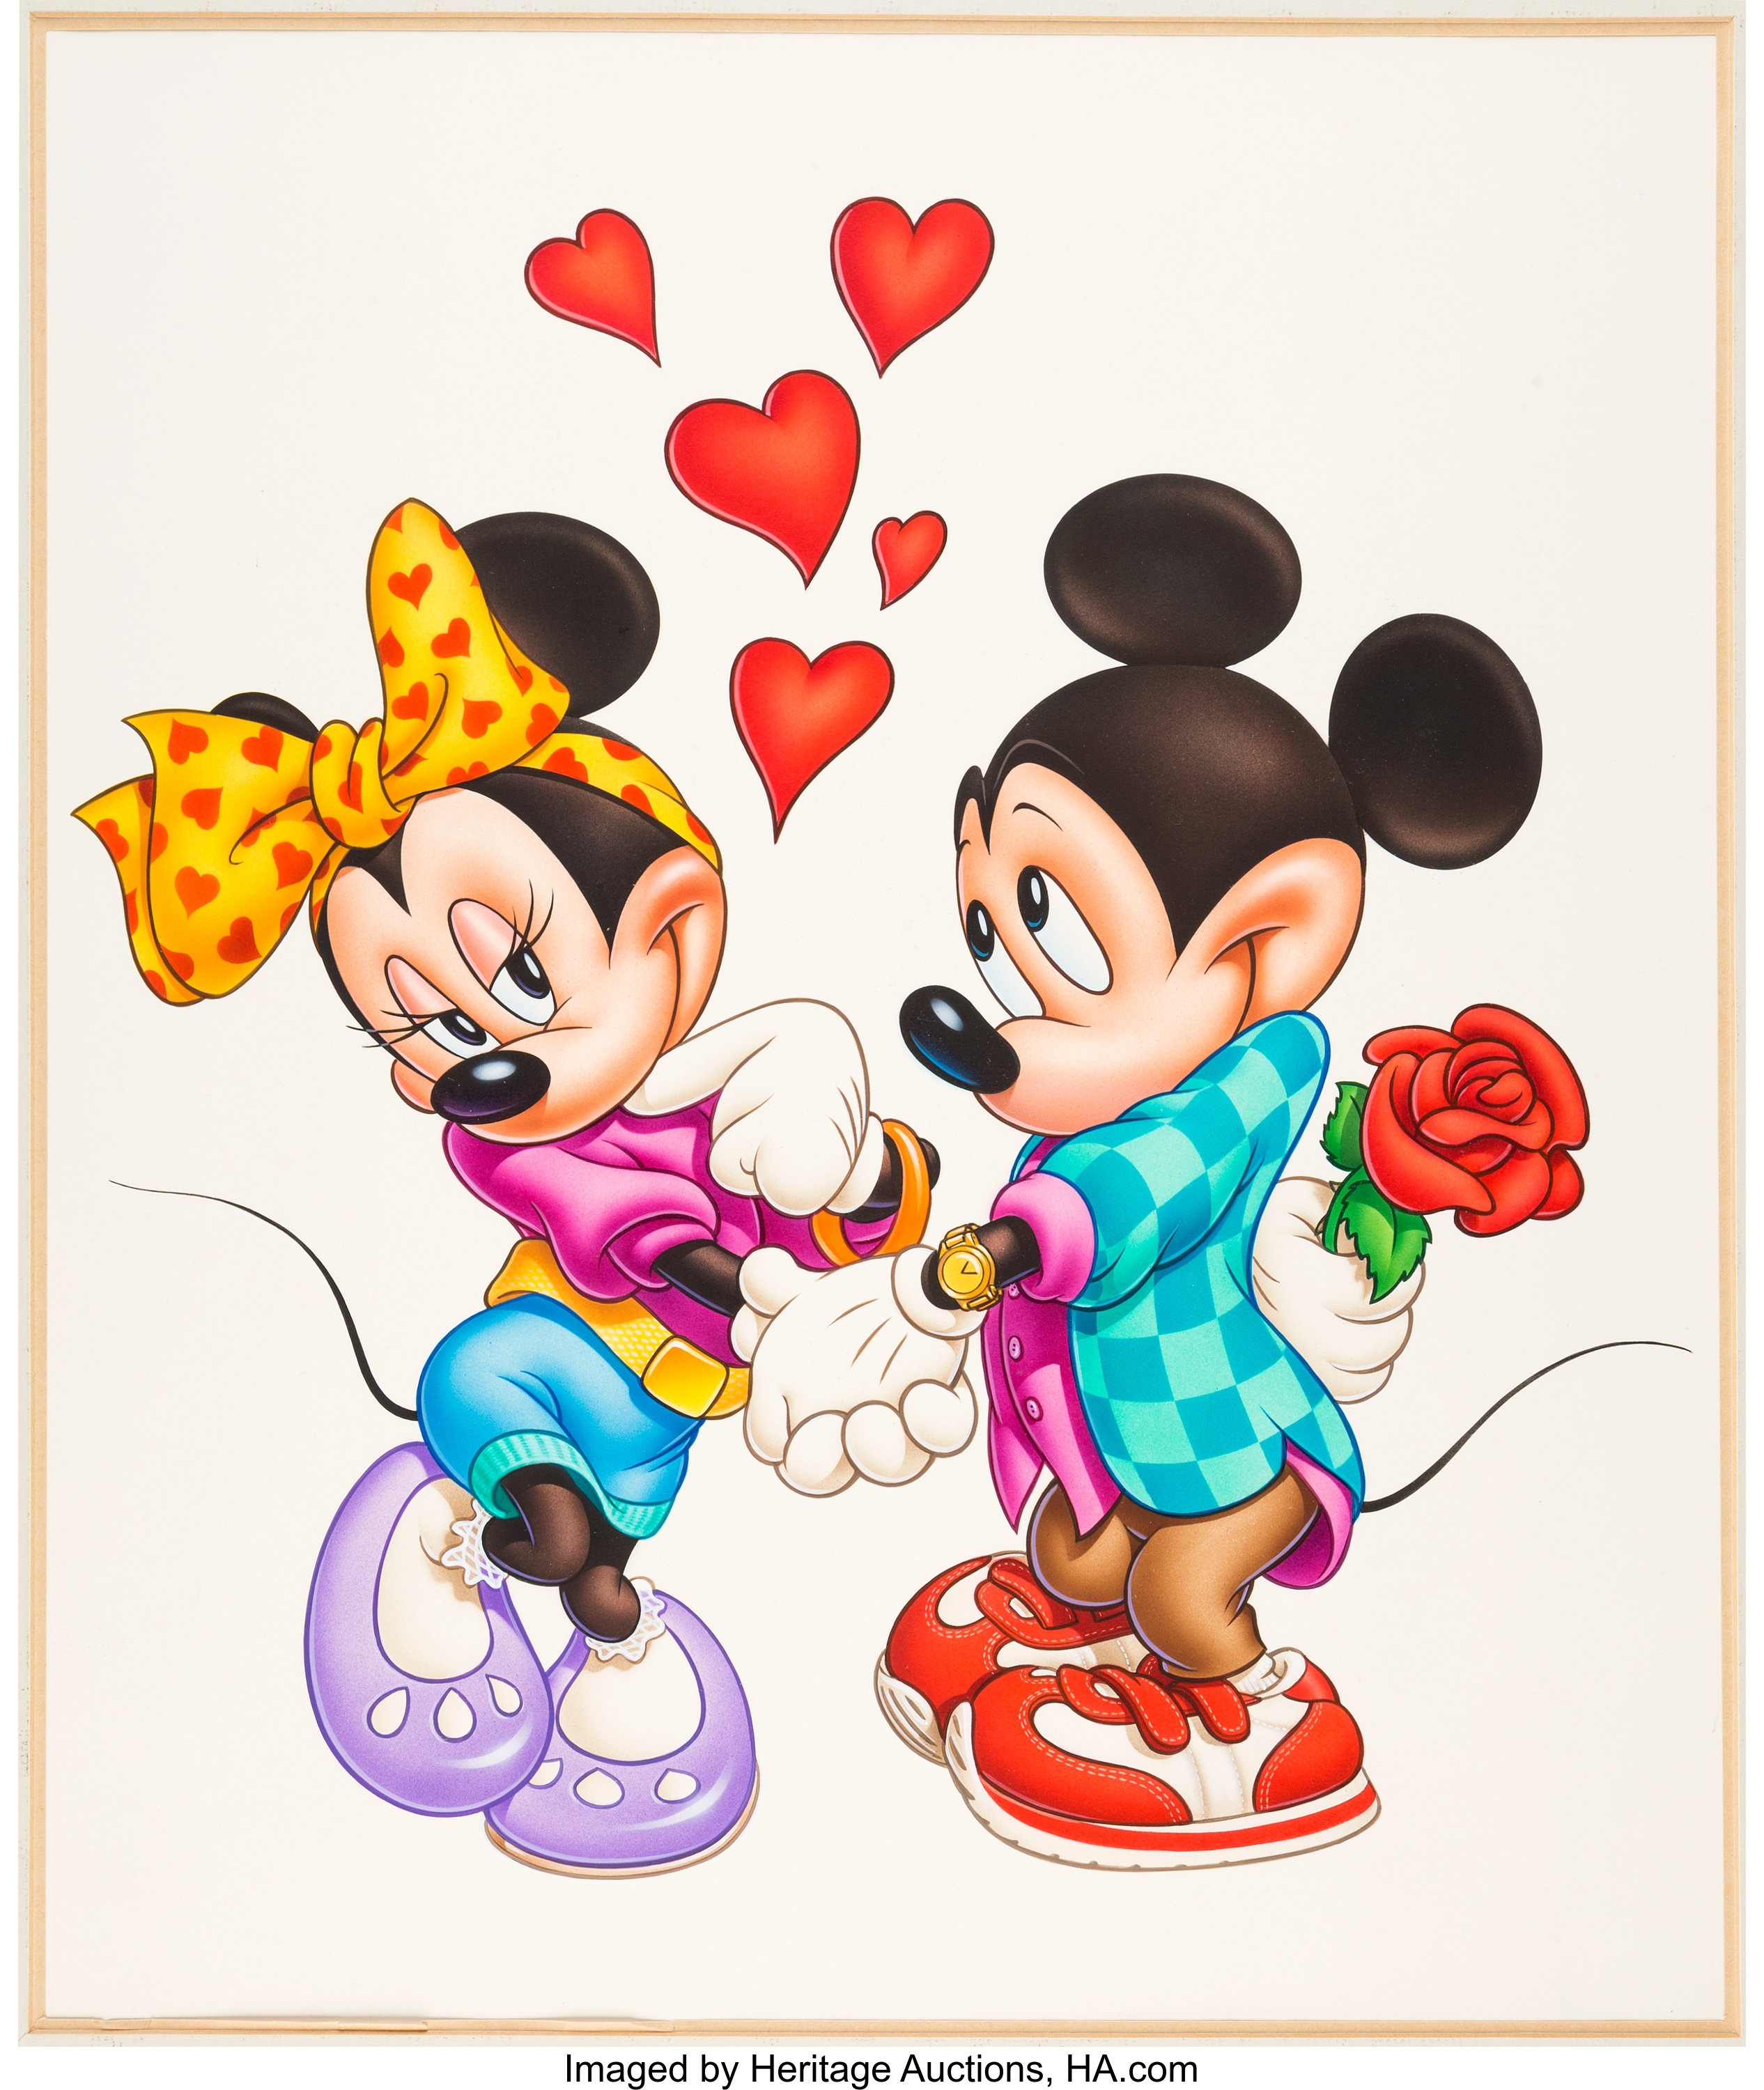 Mickey And Minnie Mouse Love Poster Illustration Original Art Lot 97036 Heritage Auctions